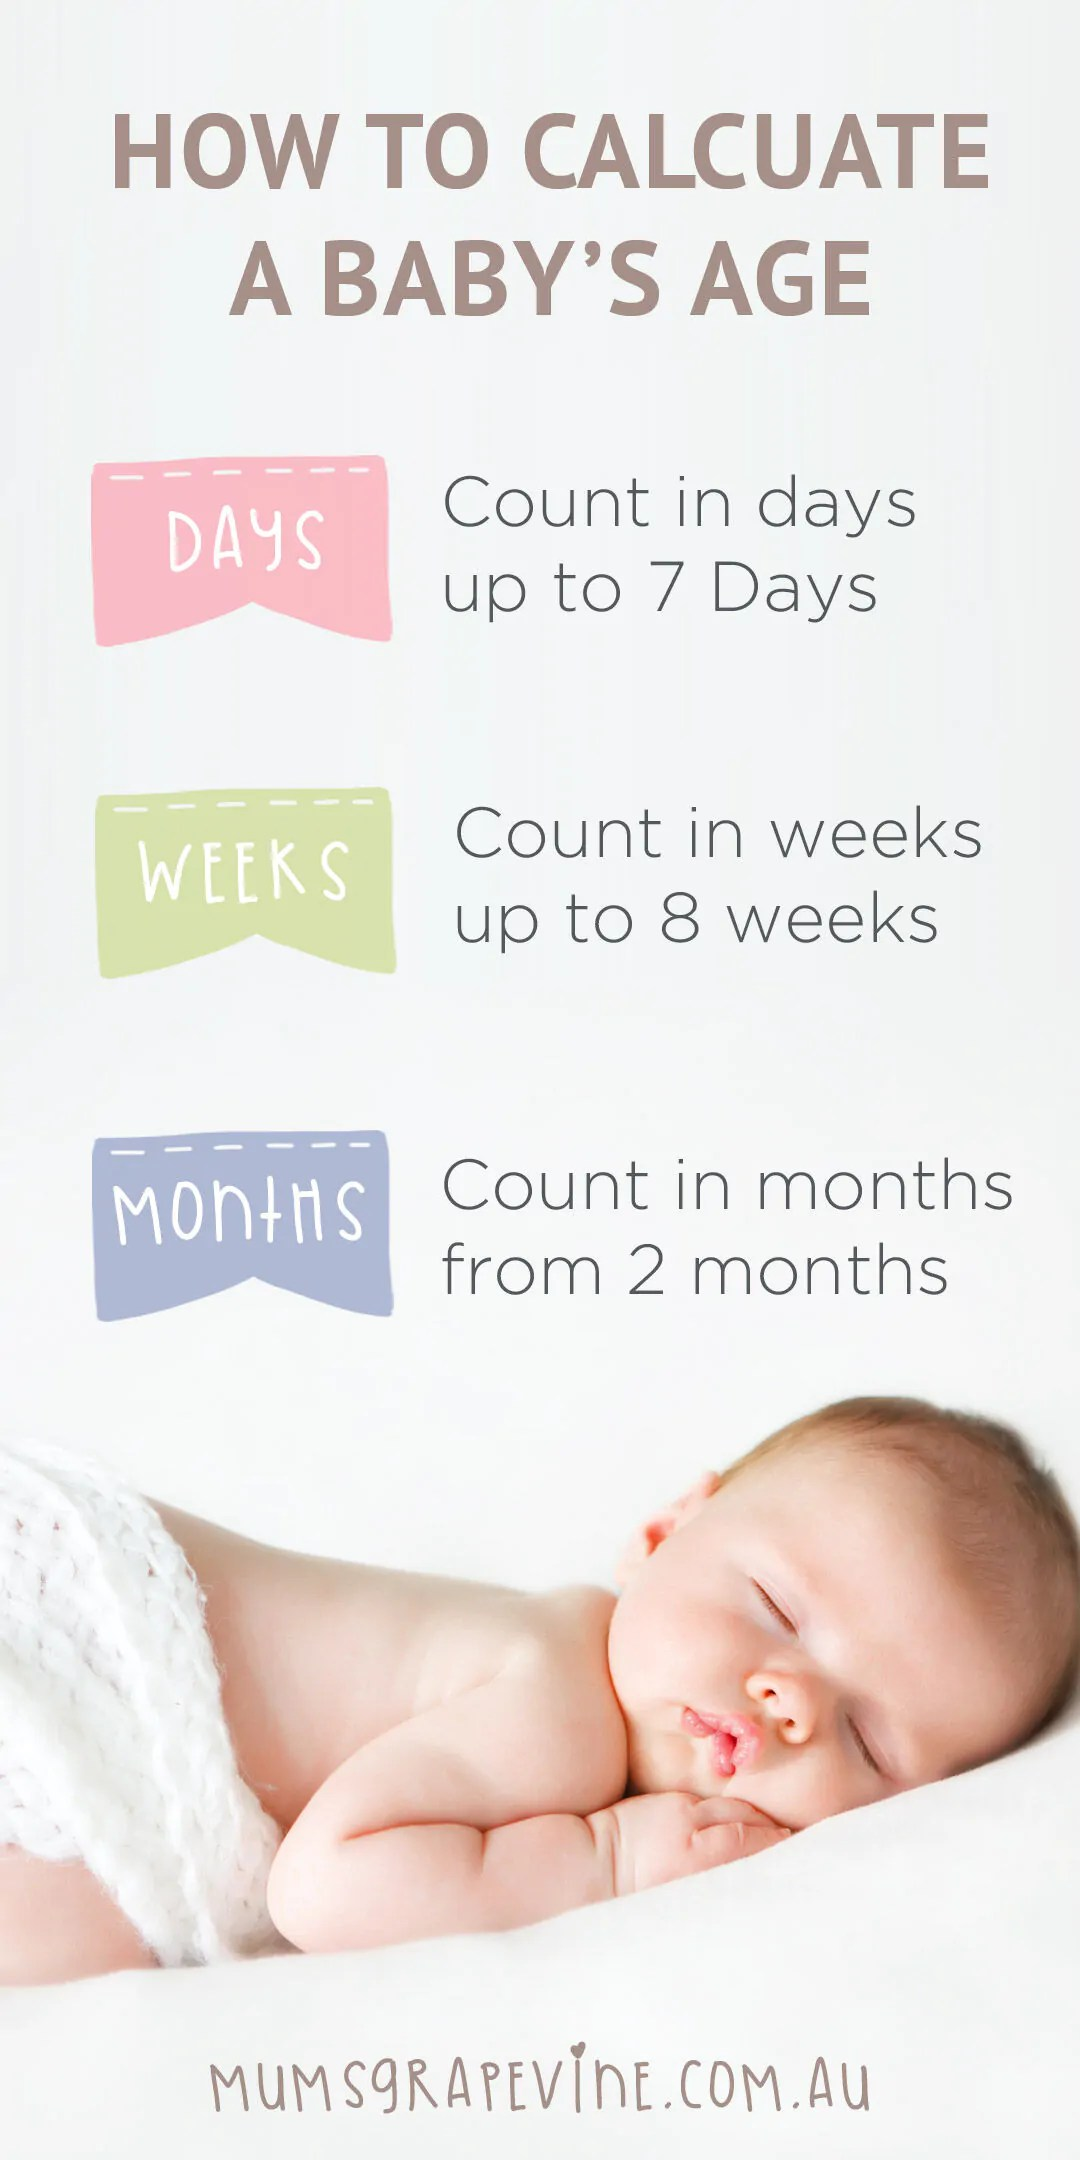 How Many Weeks Is 7 Months Old Baby : weeks, months, Baby?